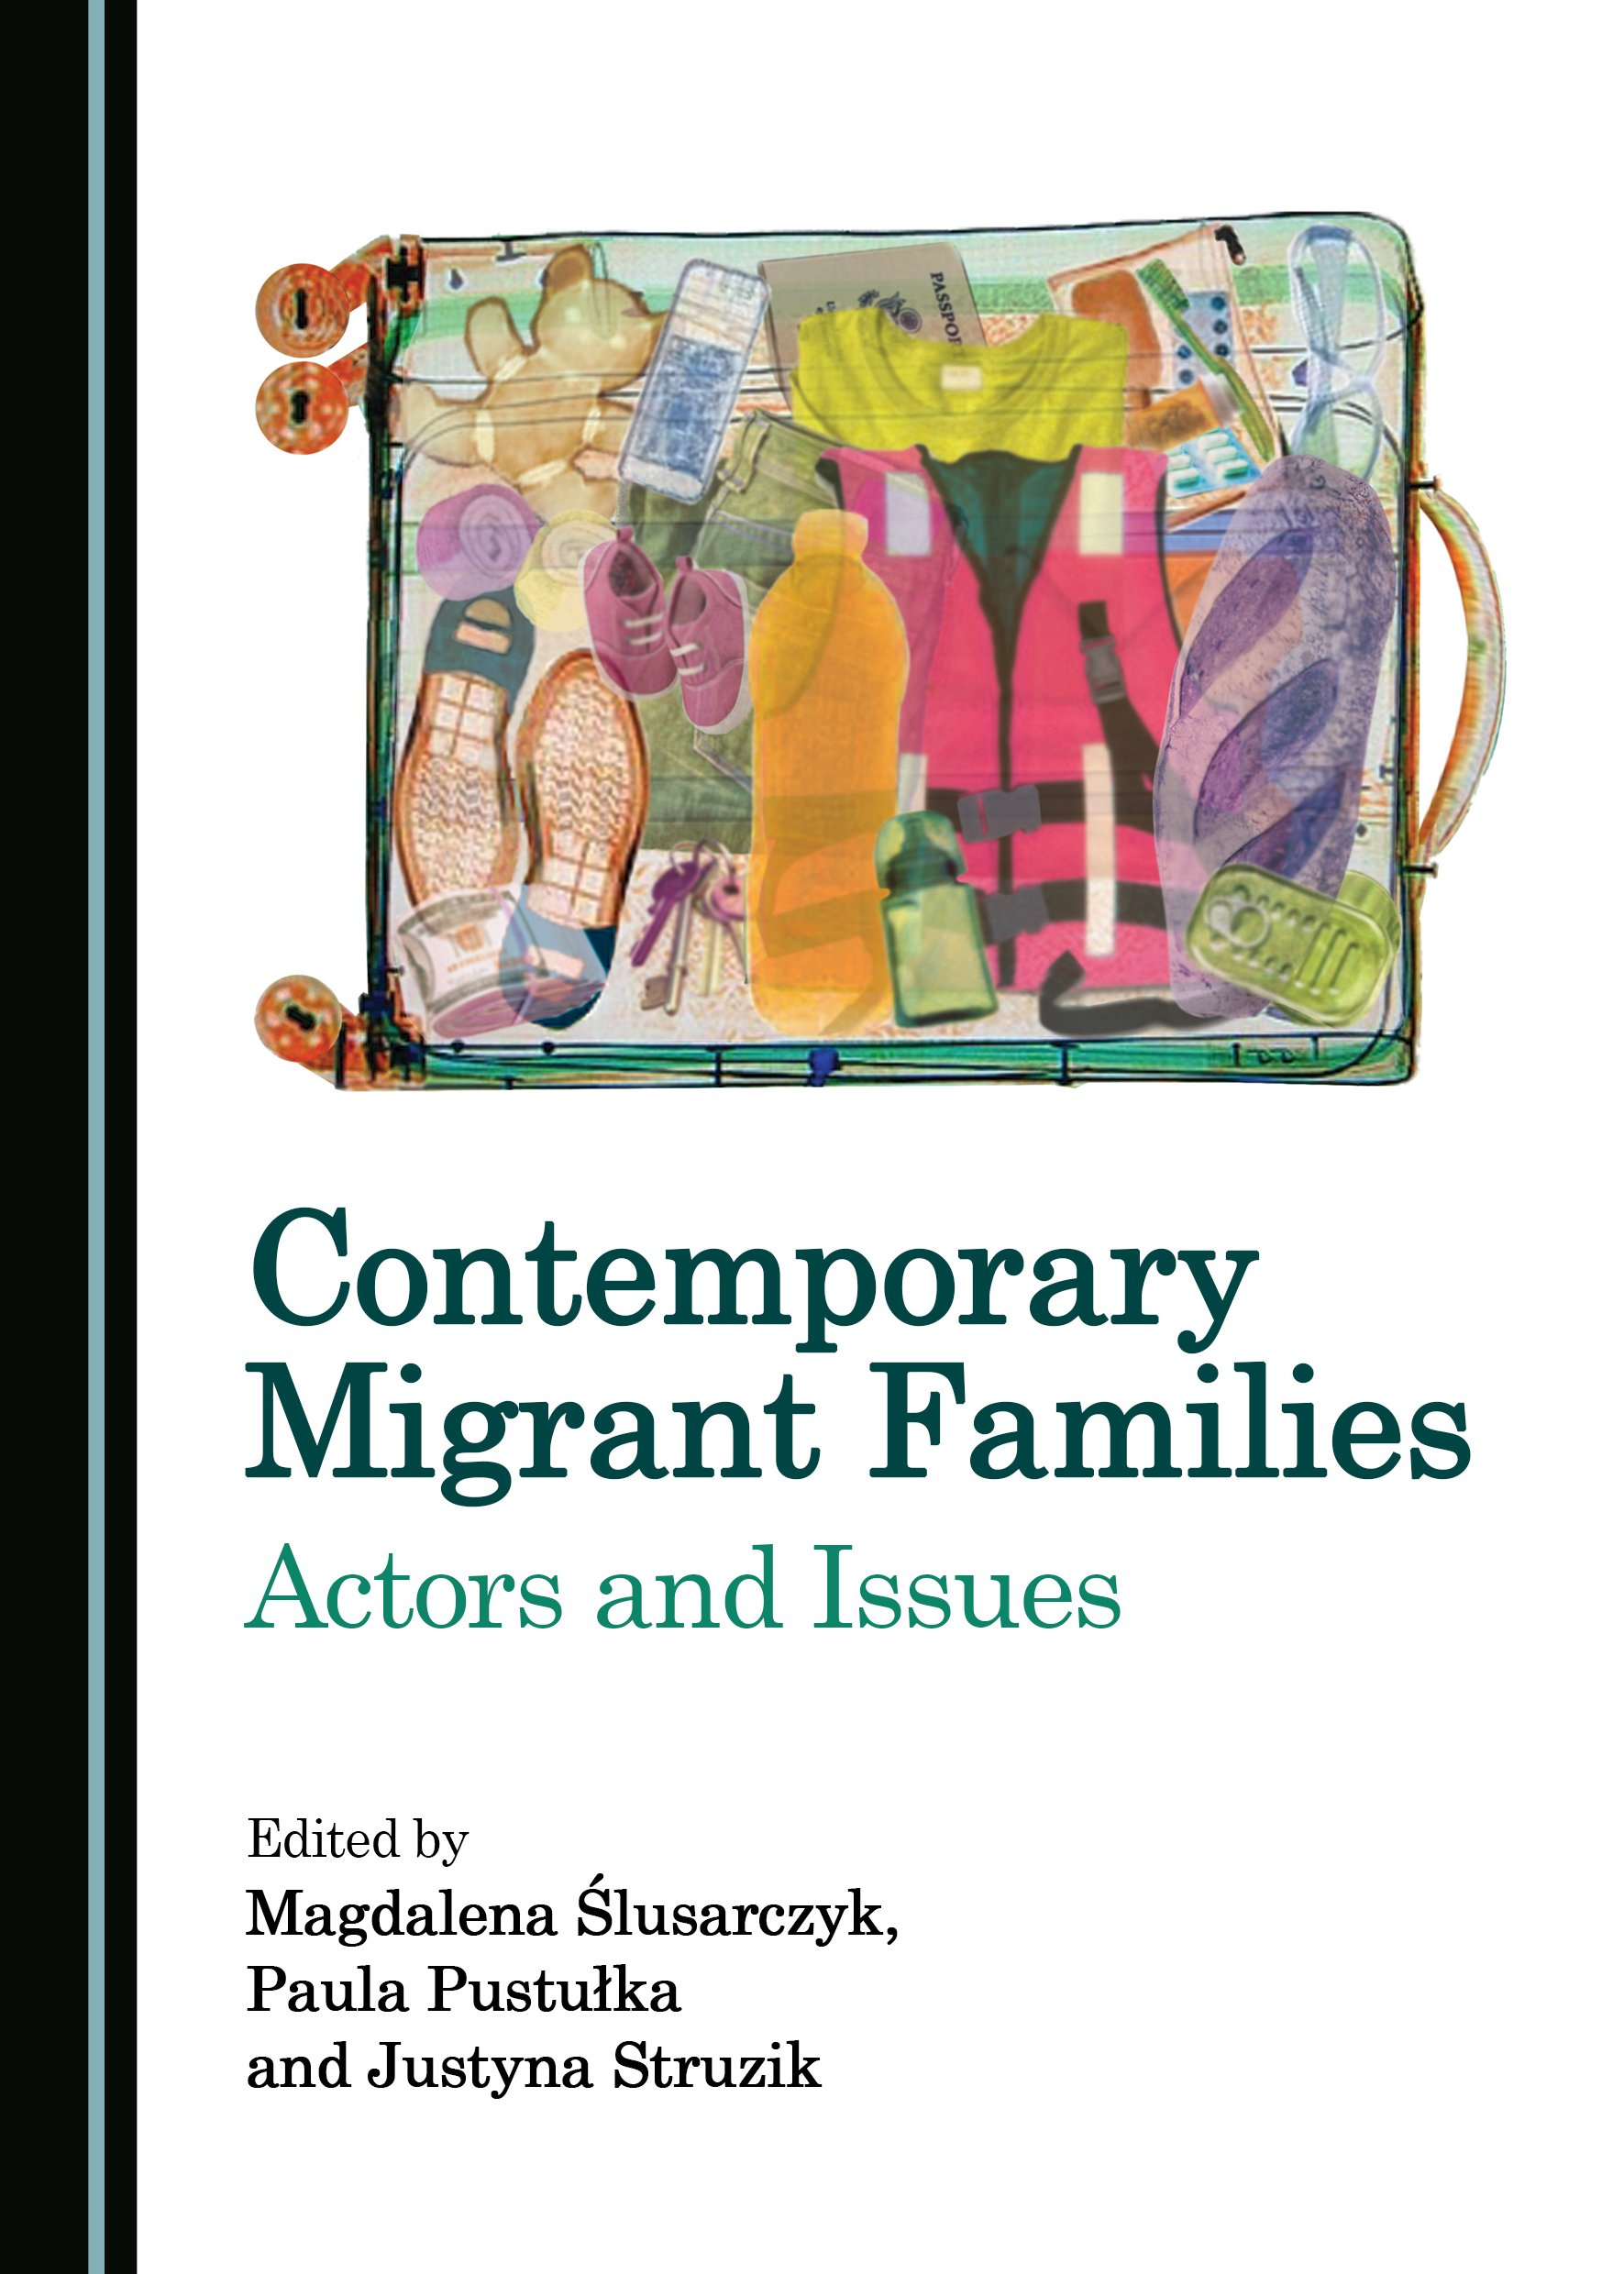 Contemporary Migrant Families: Actors and Issues